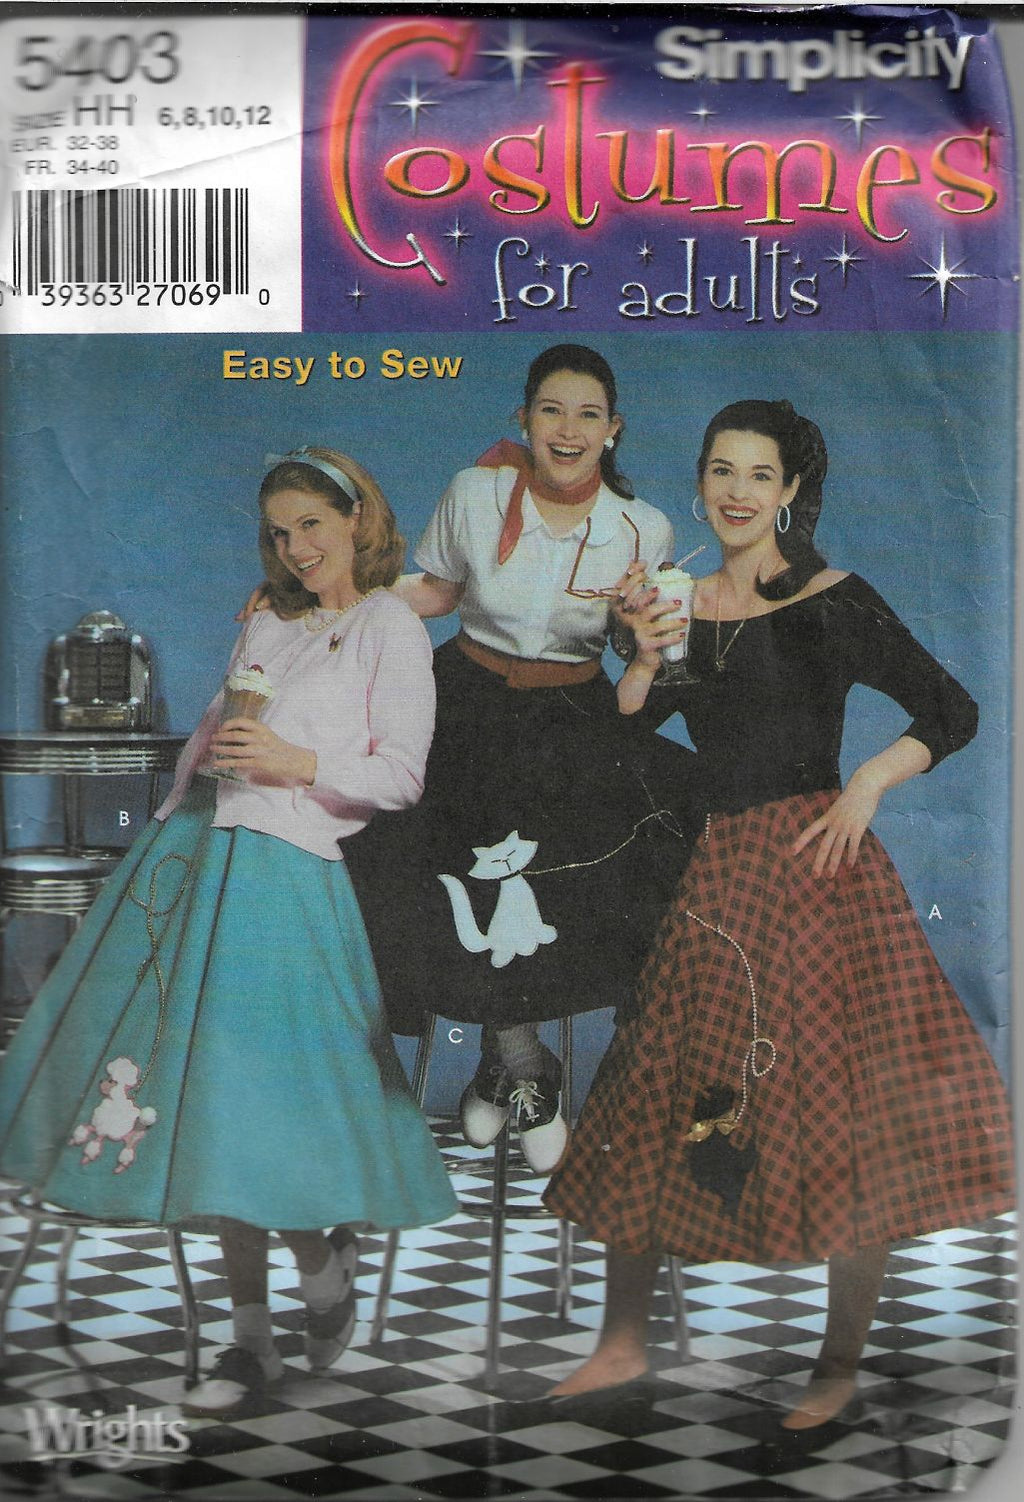 Simplicity 5403 Halloween Costume Pattern Poodle Skirt Misses - VintageStitching - Vintage Sewing Patterns